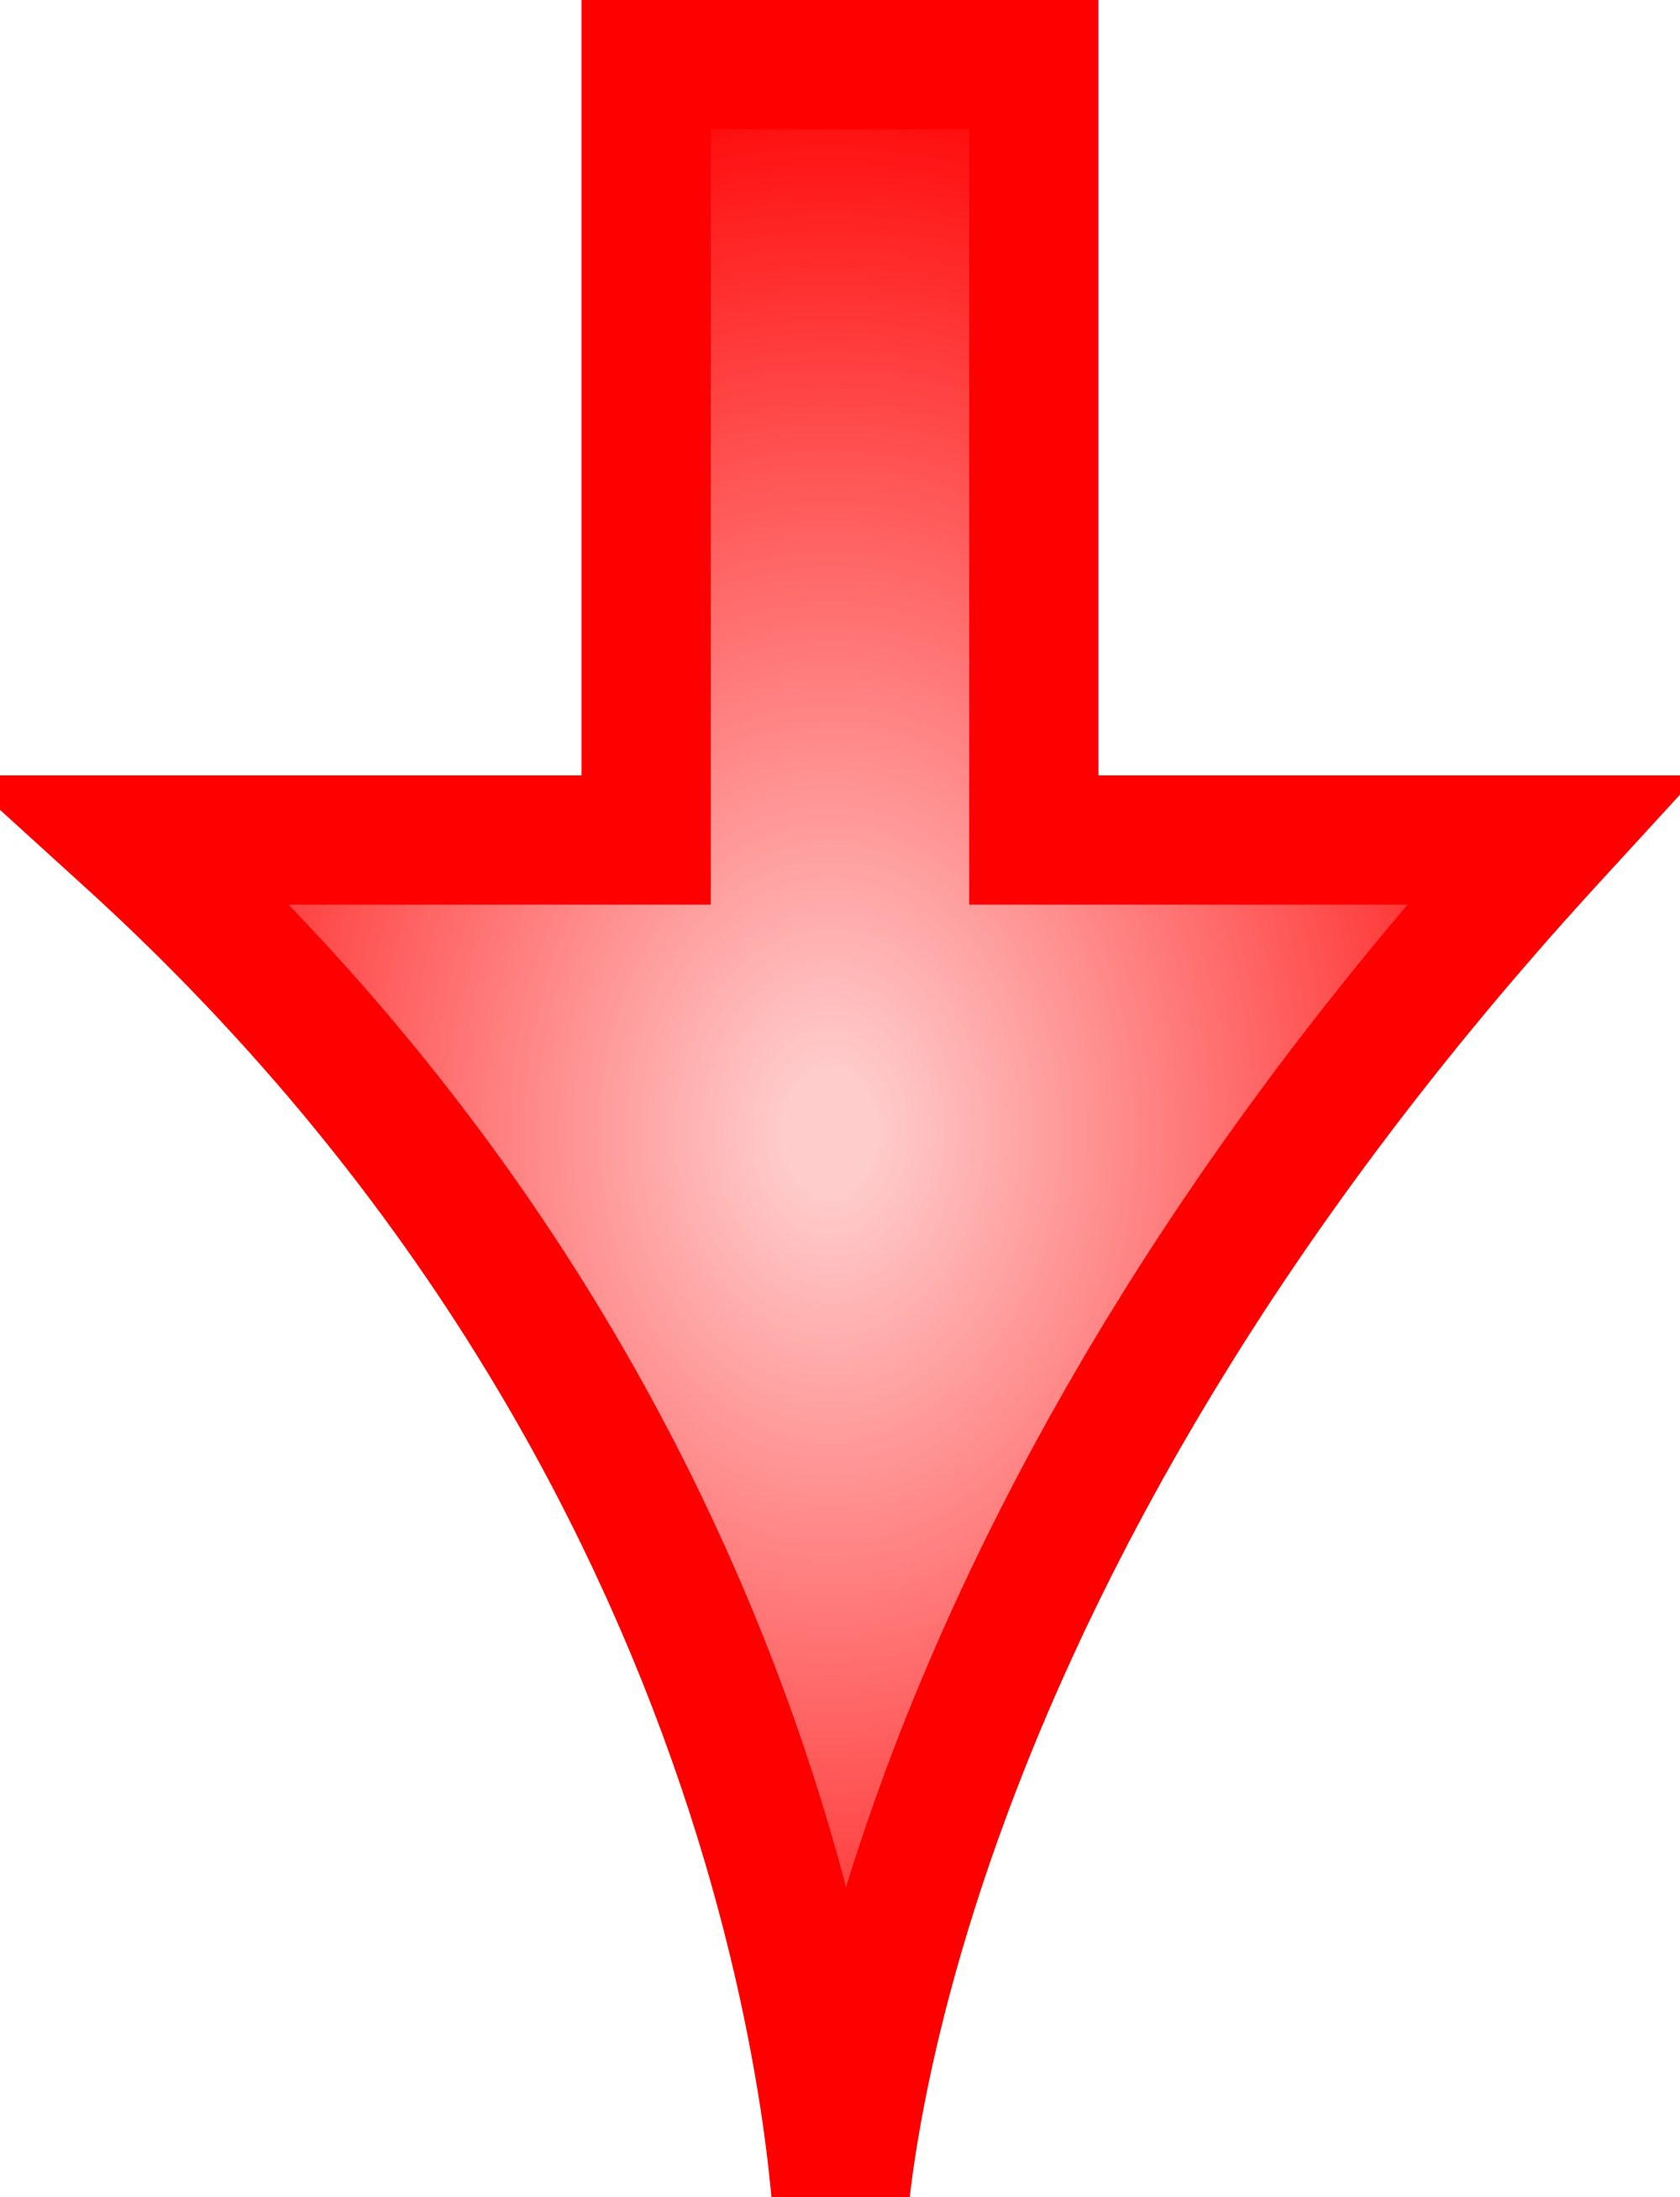 Arrows pointing down png. File arrow red svg